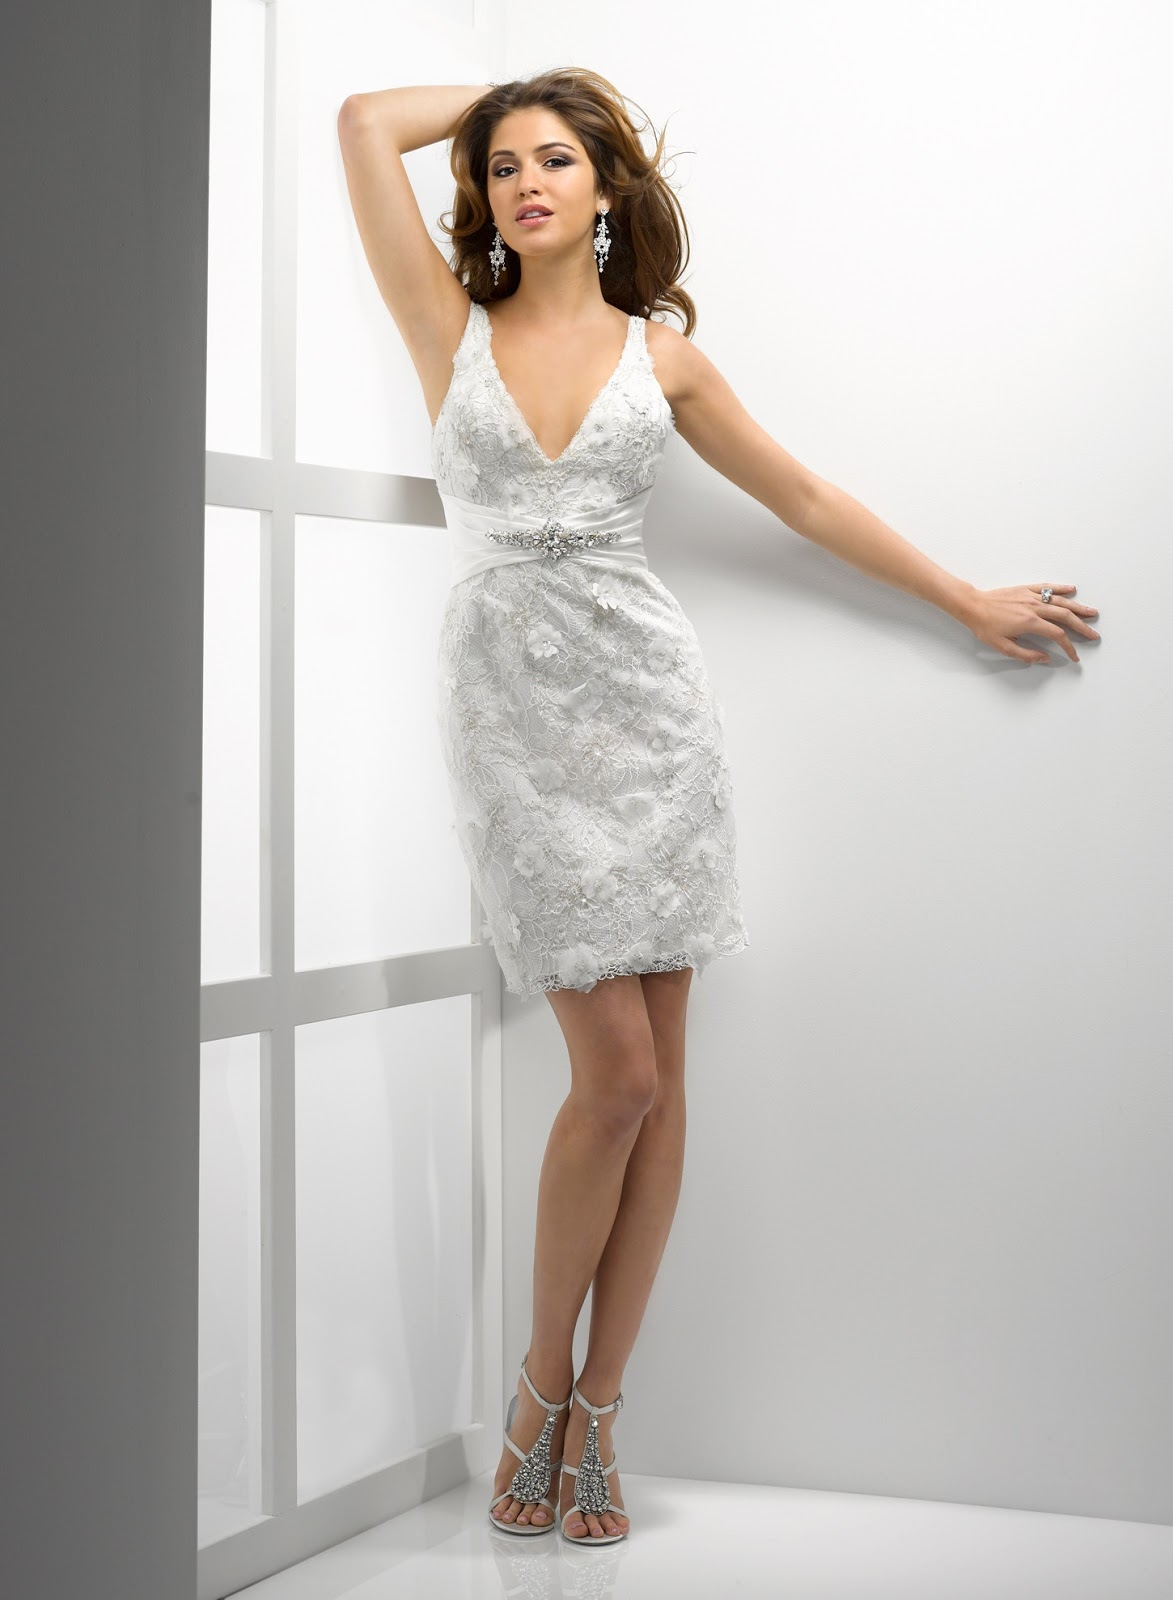 Pics for short beach wedding dresses 2012 for Short wedding dresses 2012